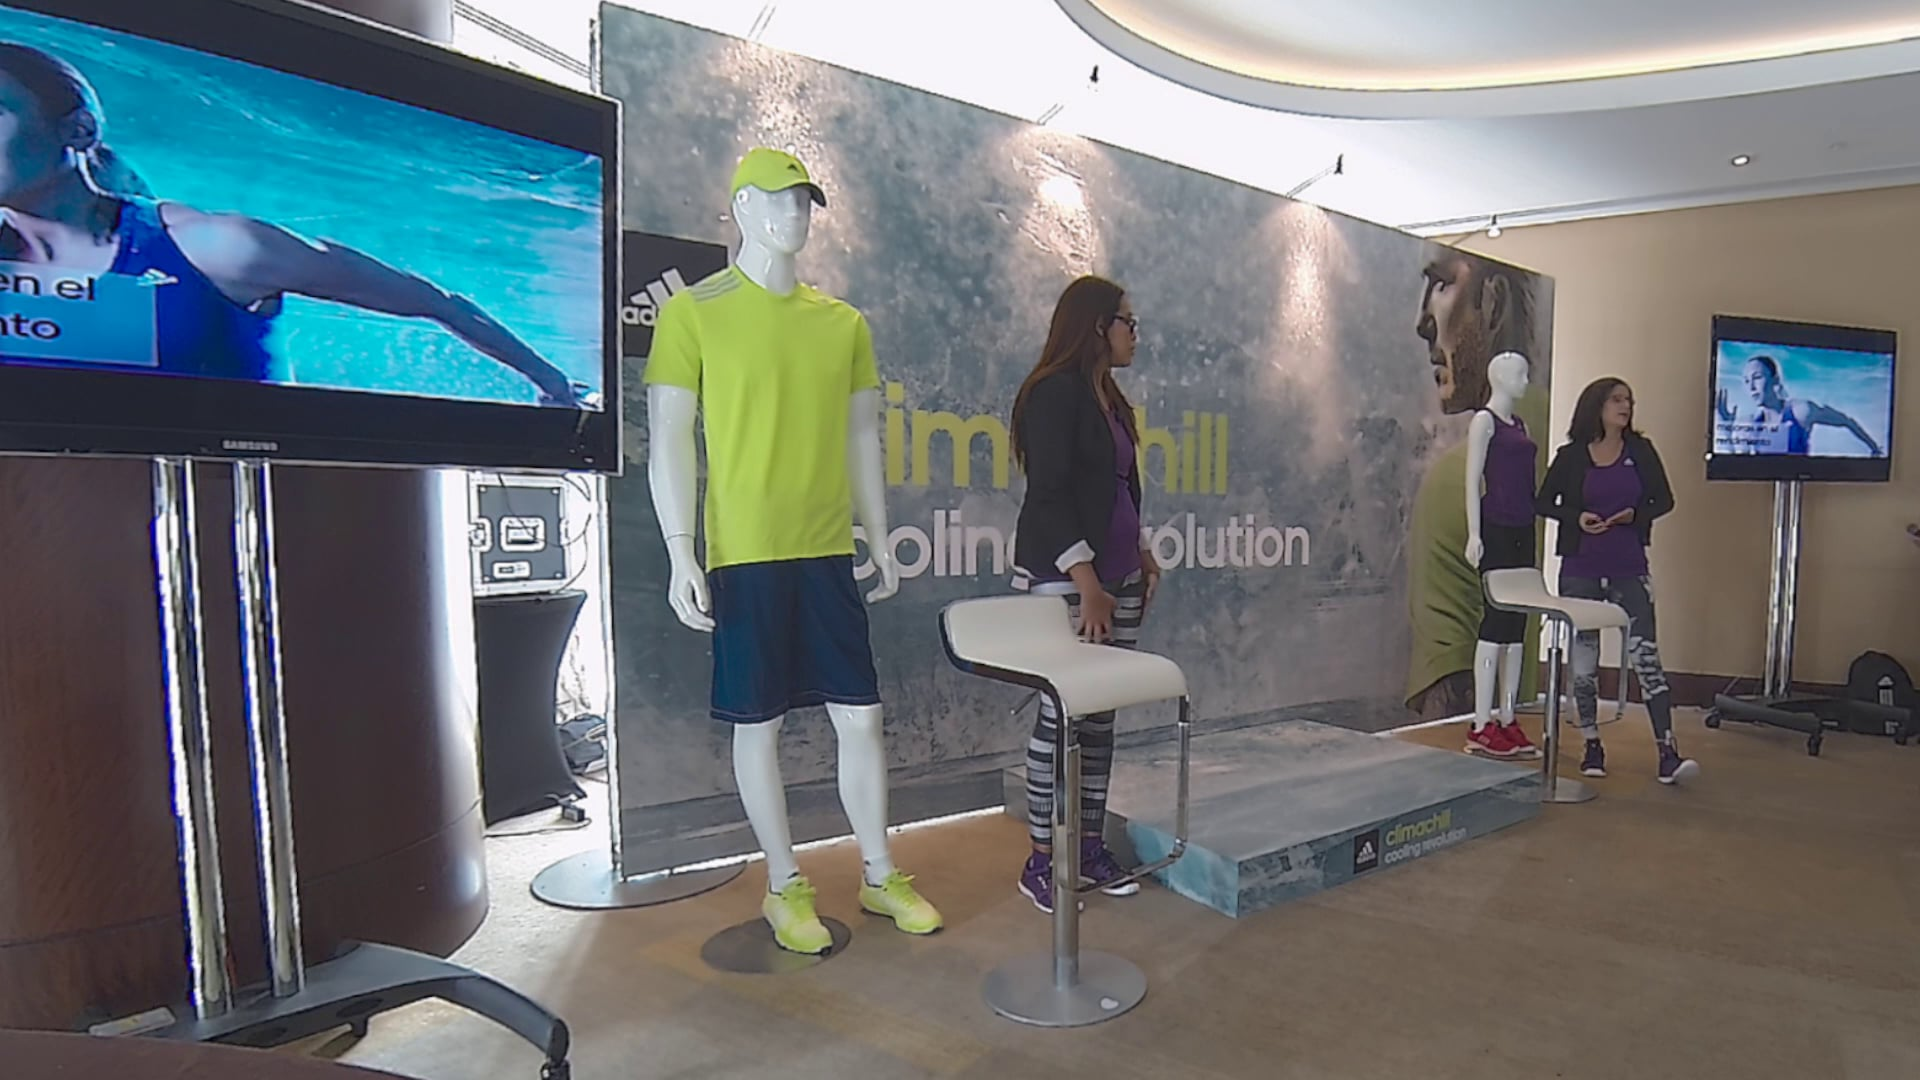 Adidas Climachill product launch for Latin America division - Miami - video recap - event produced by Impacten Media